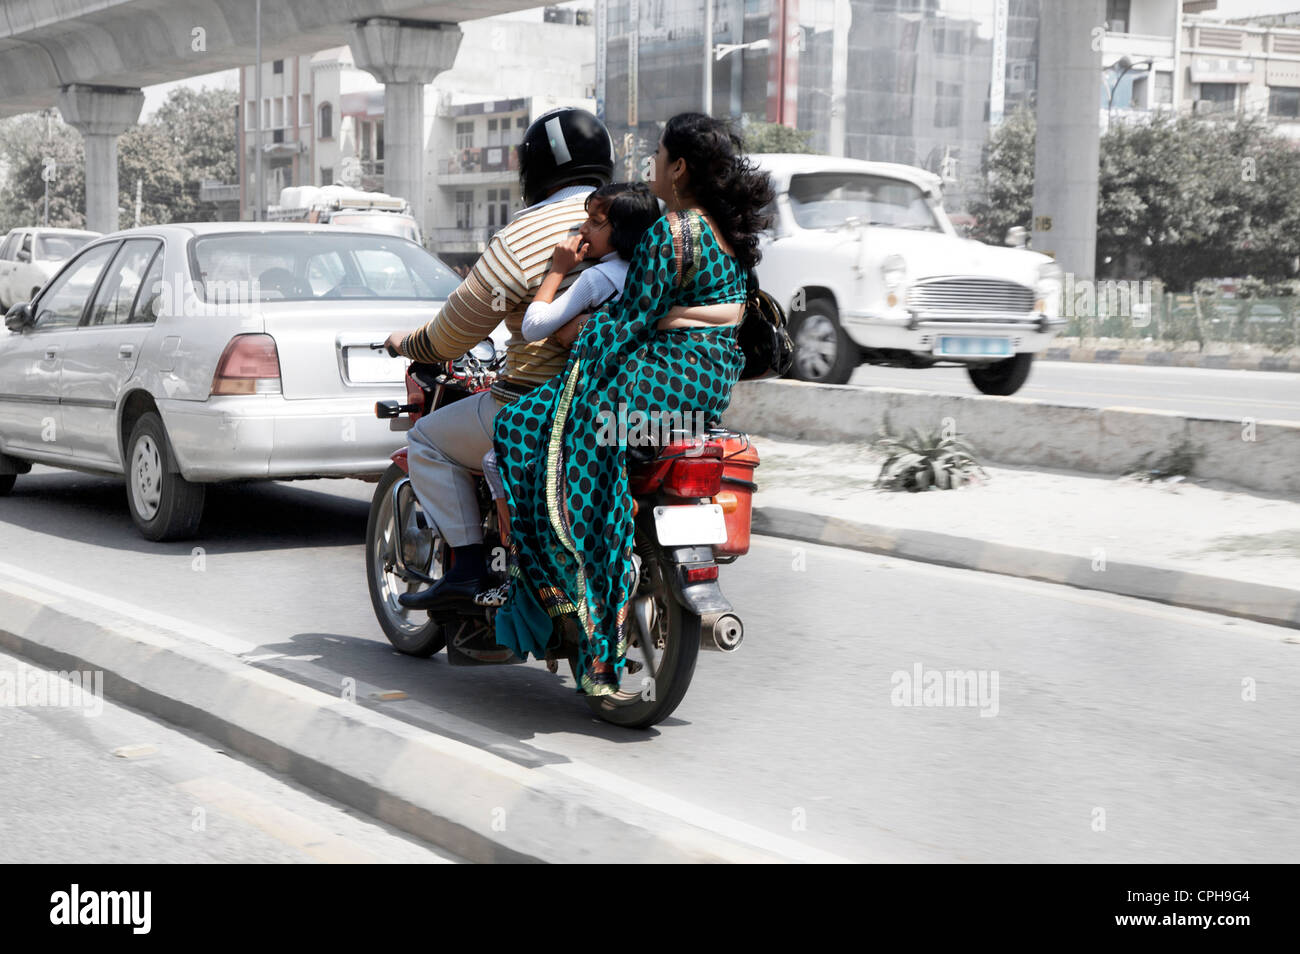 Indian Family On Motor Bike Stock Photo Royalty Free